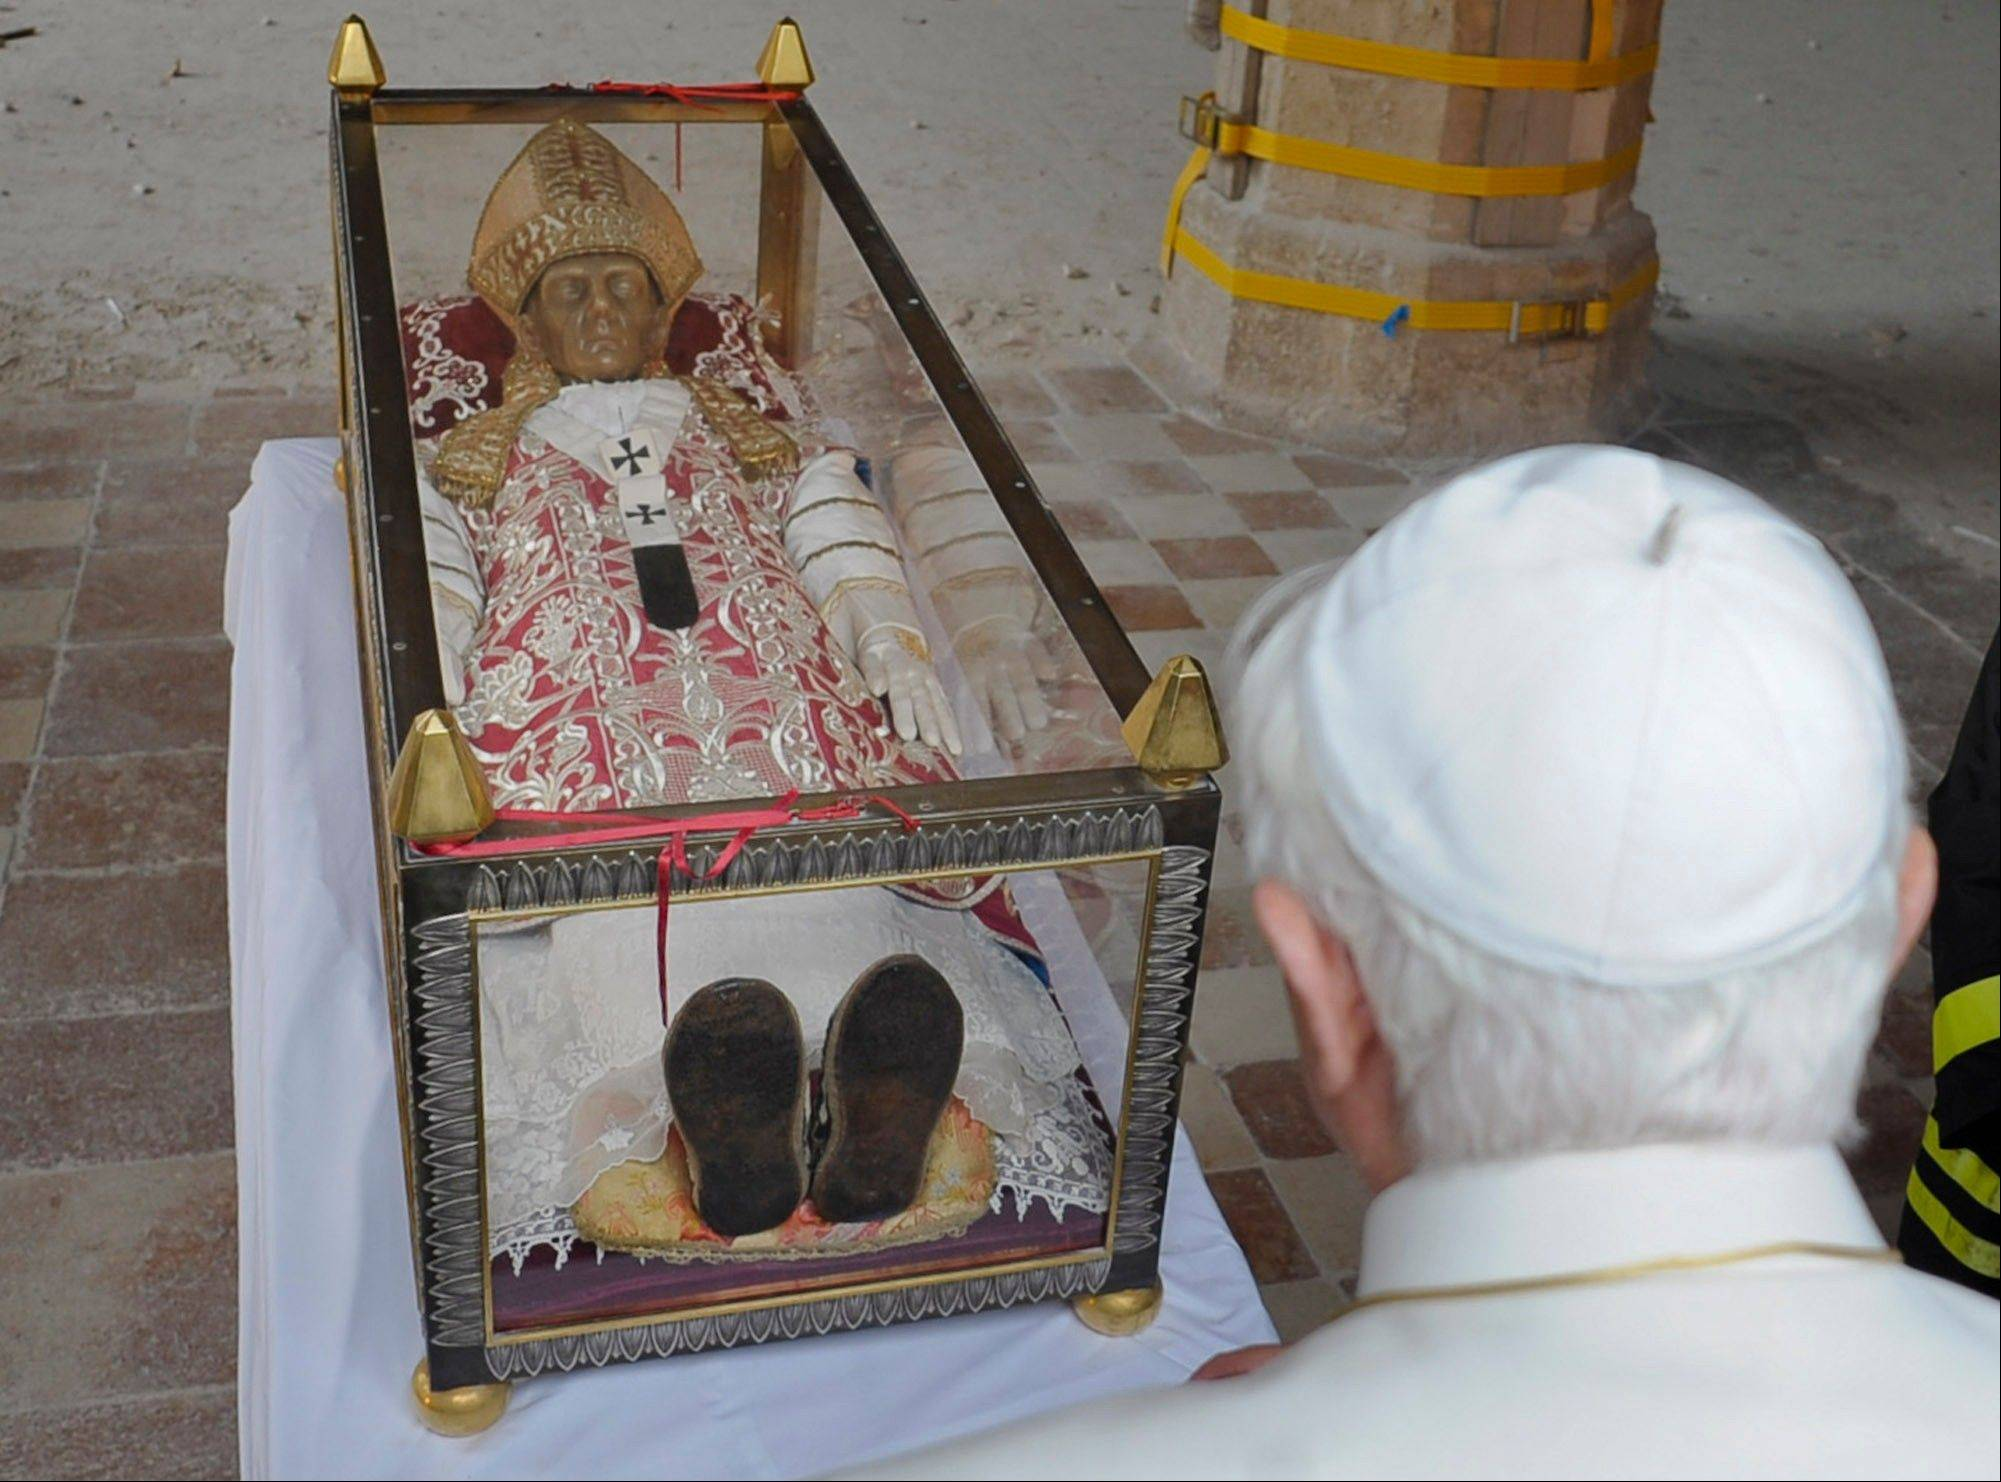 Pope Benedict XVI stands by the salvaged remains of Pope Celestine V in the 13th-century Santa Maria di Collemaggio Basilica, the symbol of the city of L'Aquila, whose roof partially caved in during an earthquake.